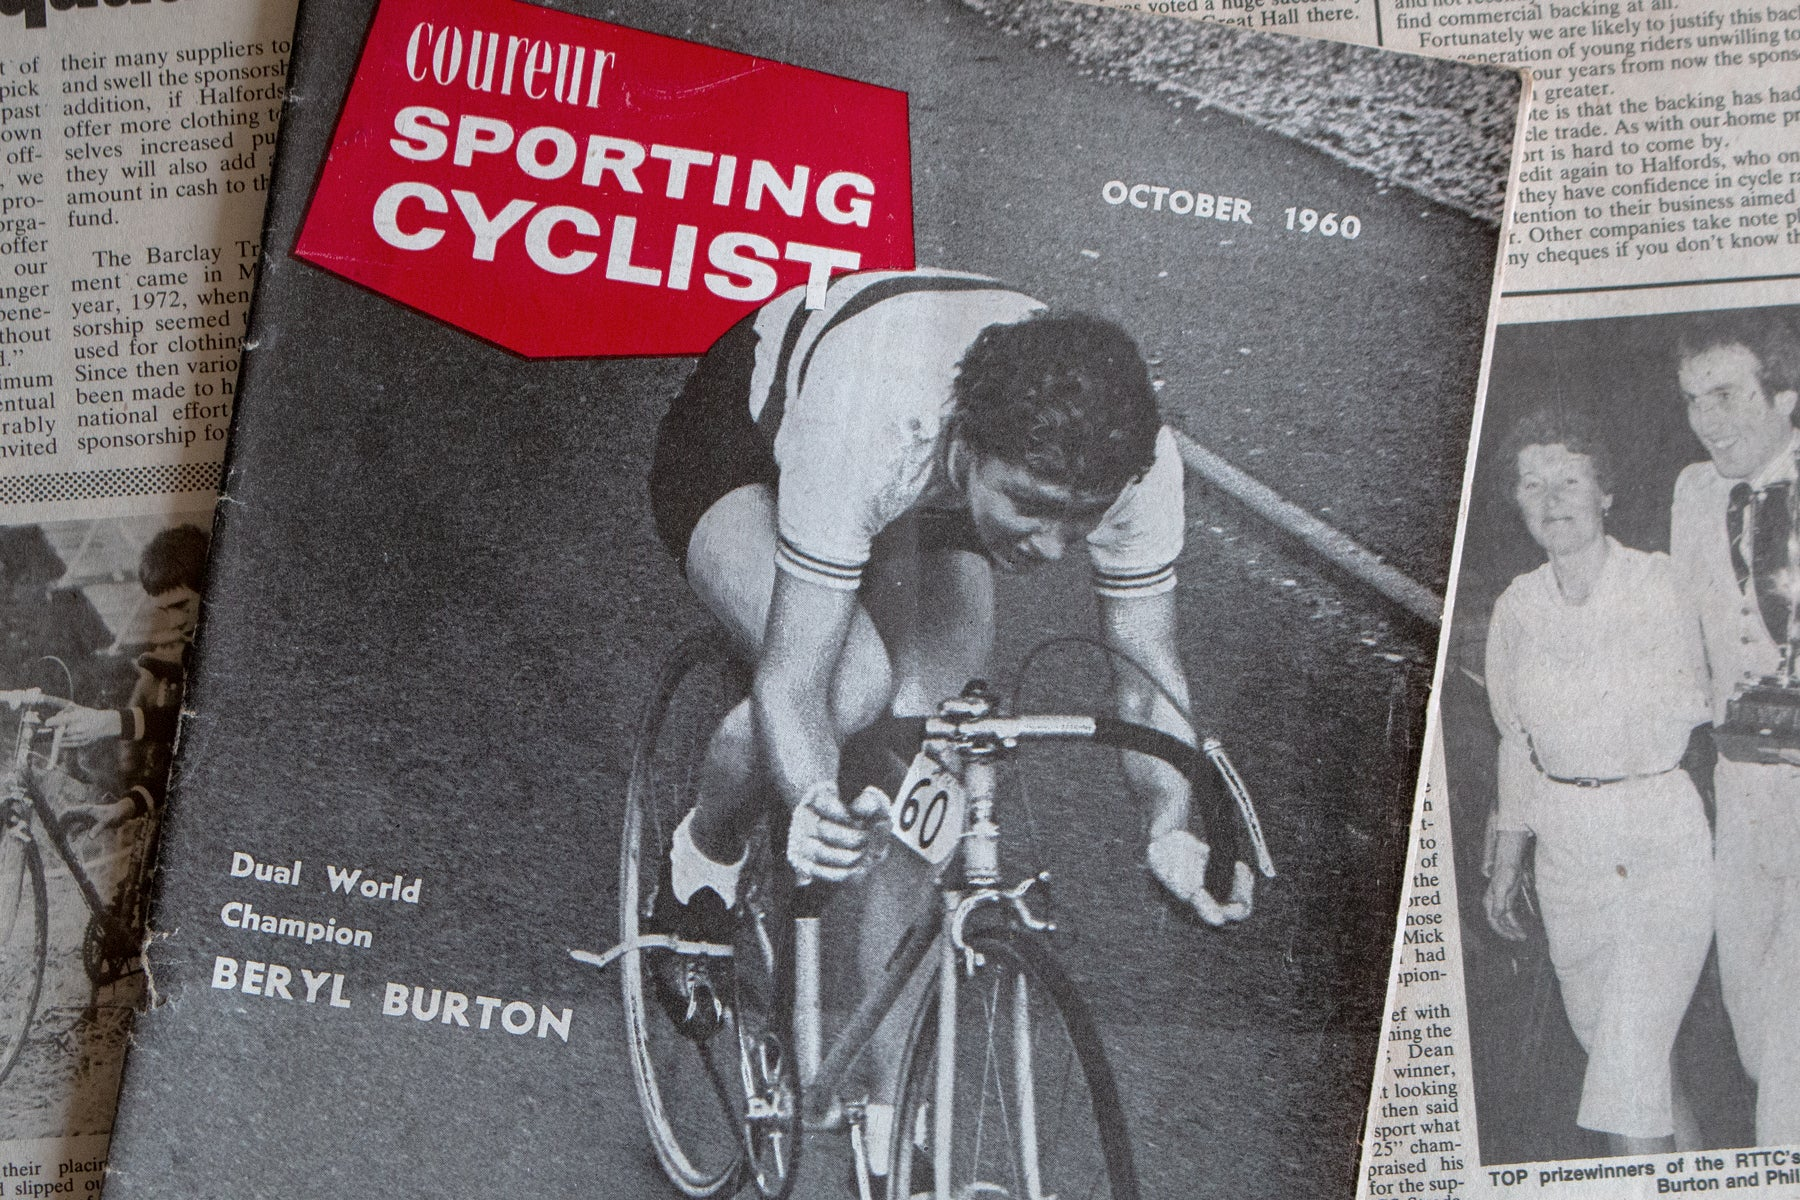 Berly Burton on the cover of Sporting Cyclist c.1960 - Pedal Pedlar Classic & Vintage Cycling